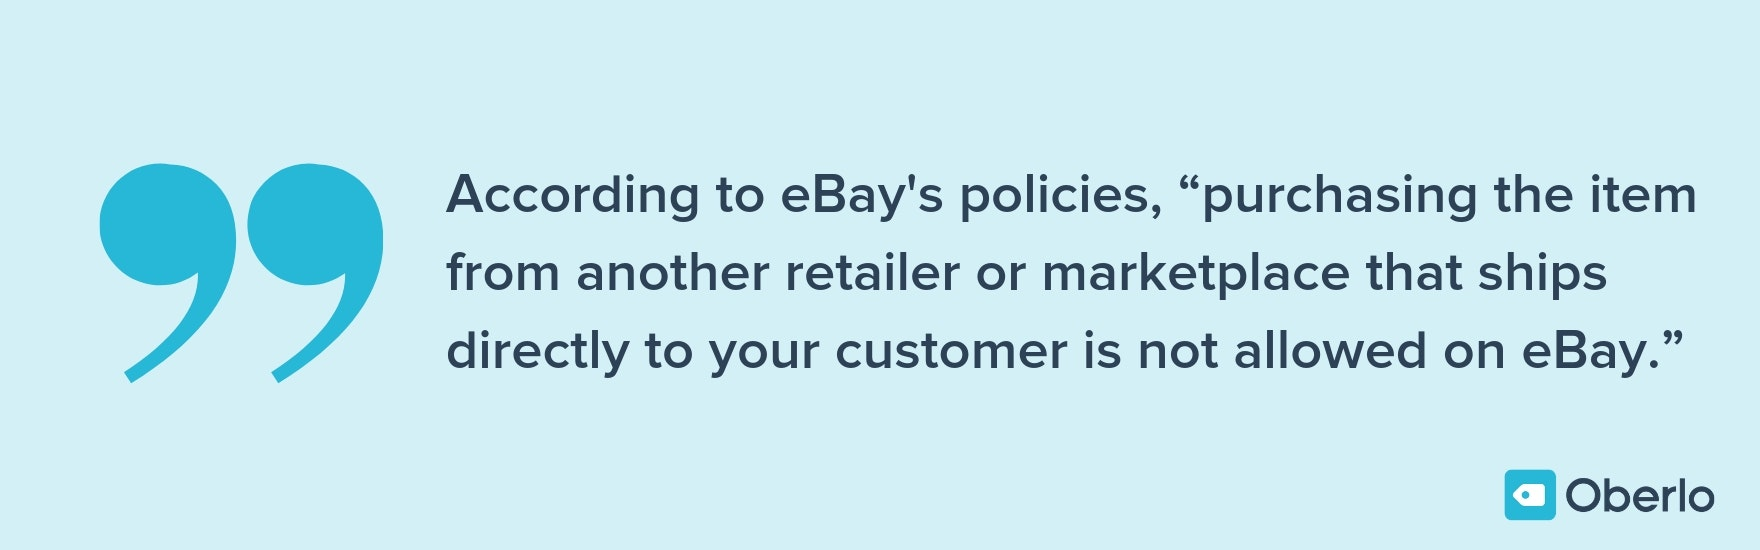 ebay dropshipping policies